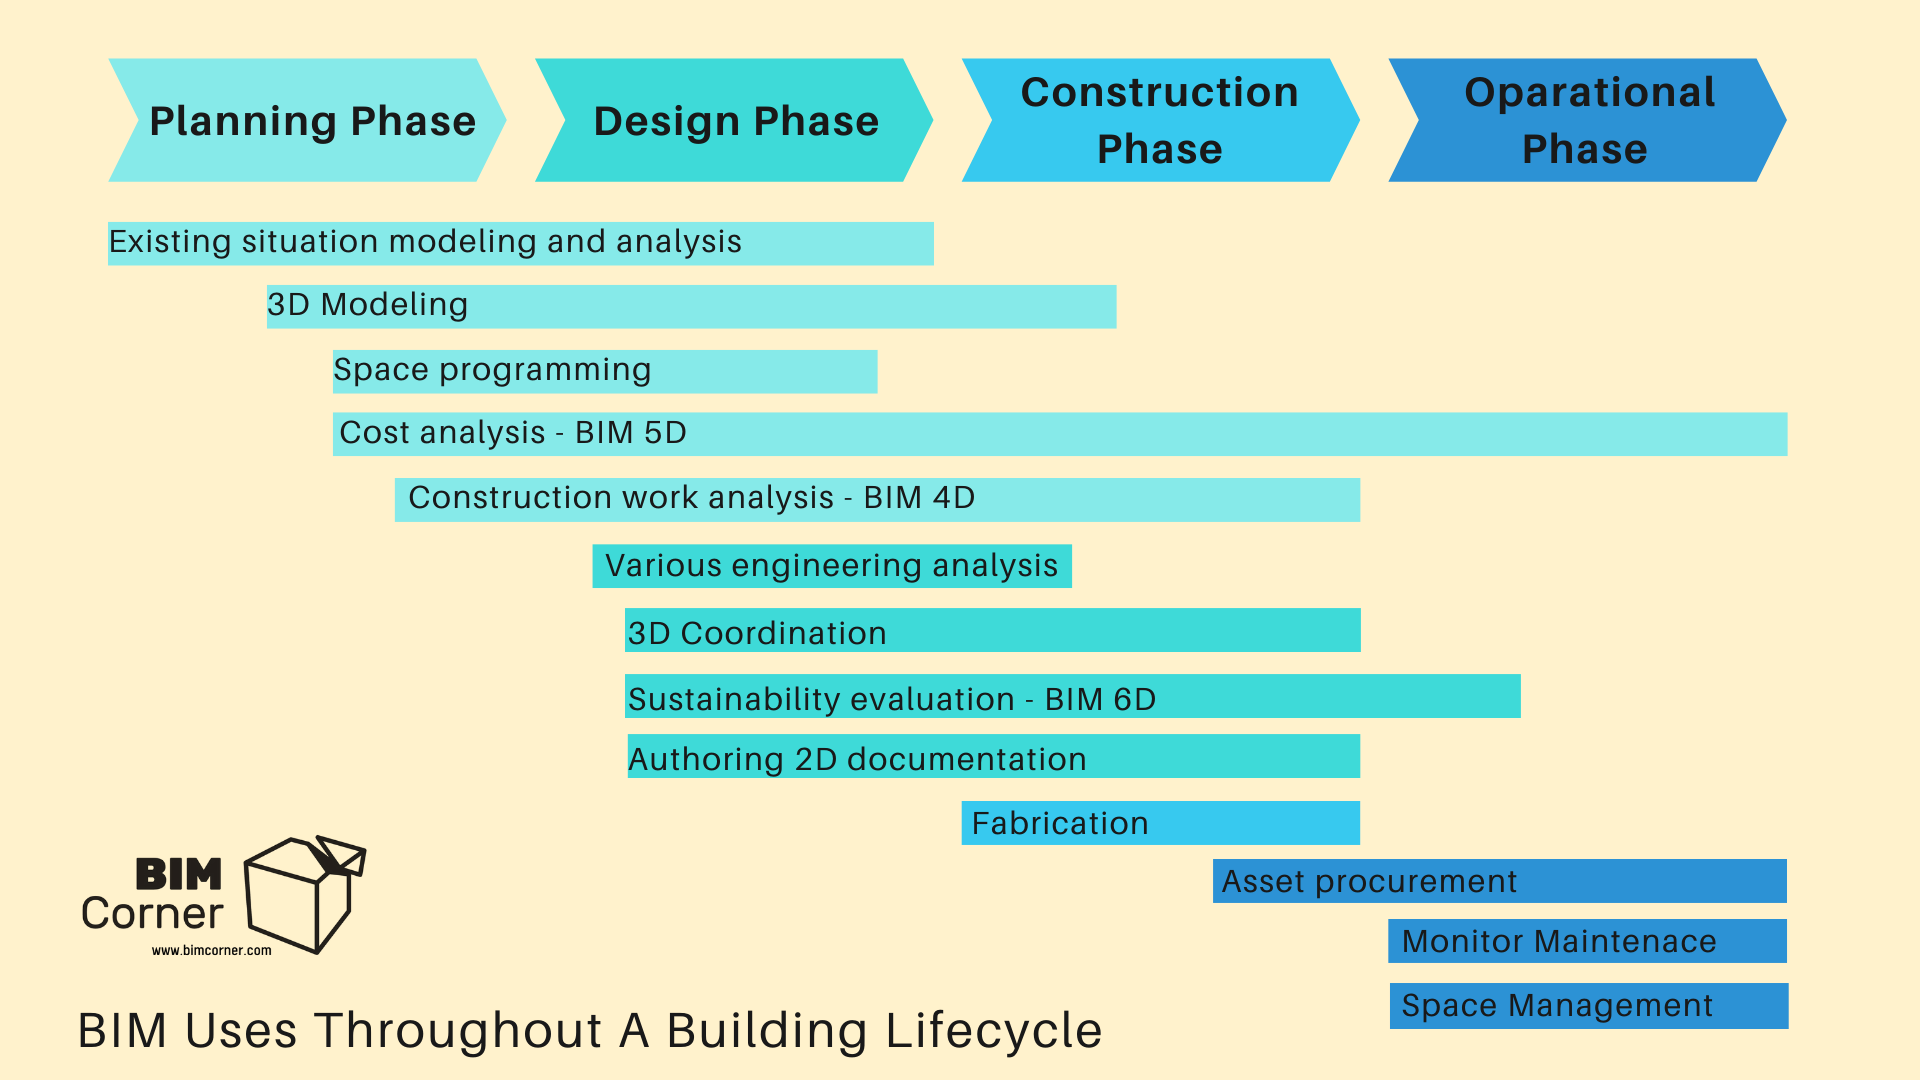 BIM Uses Throughout A Building Lifecycle